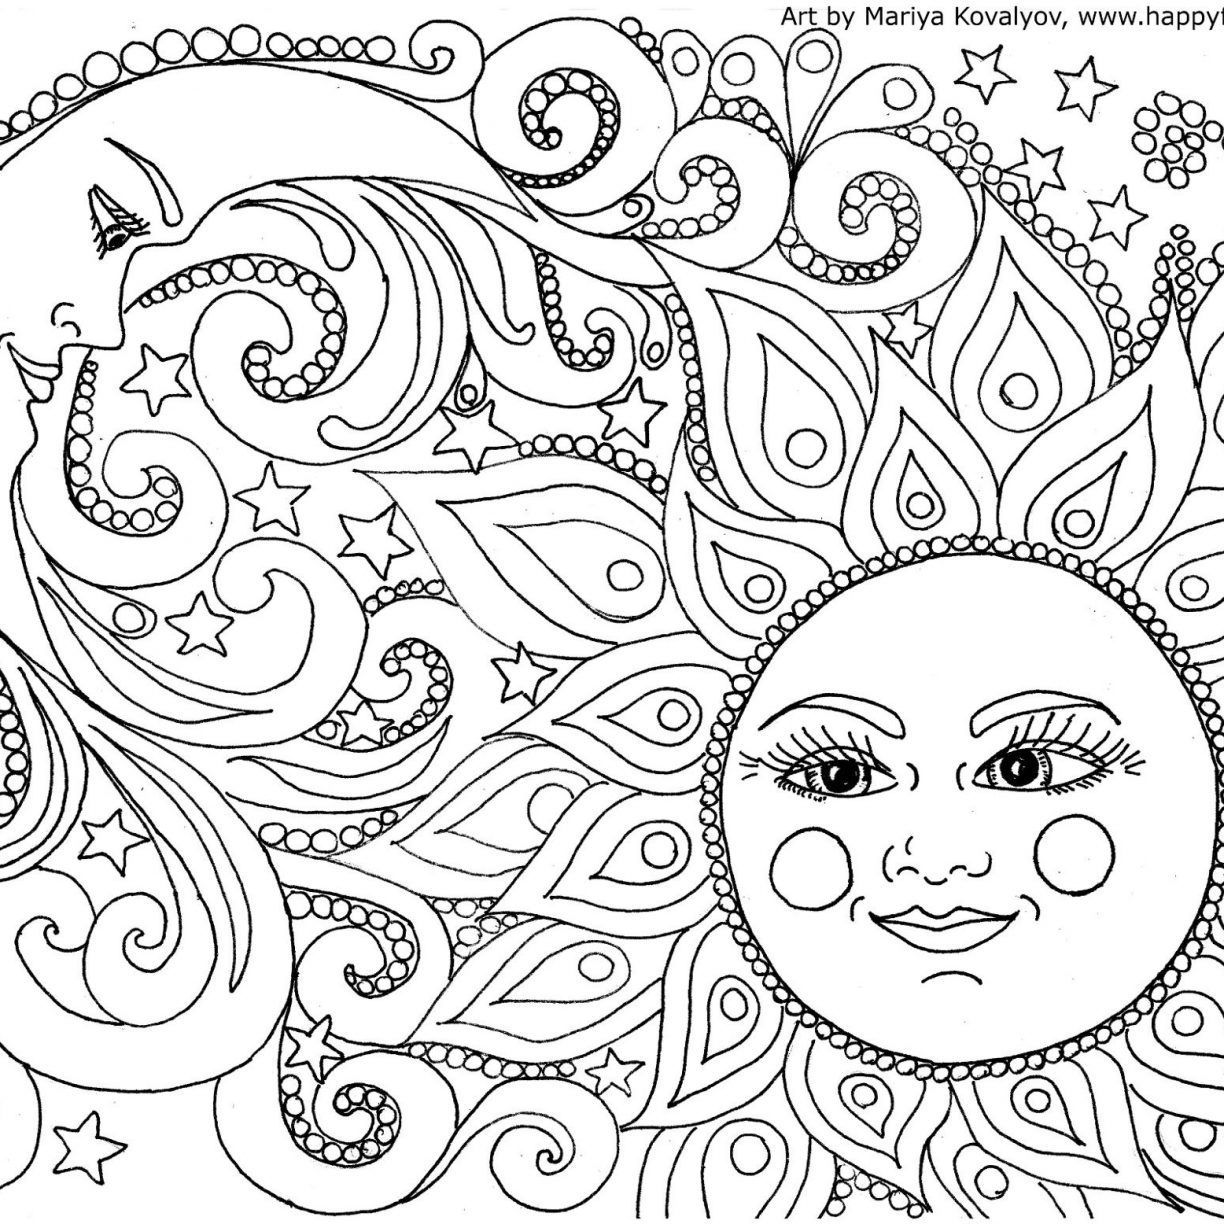 1224x1224 Coloring Page Adult Doodle Monster World